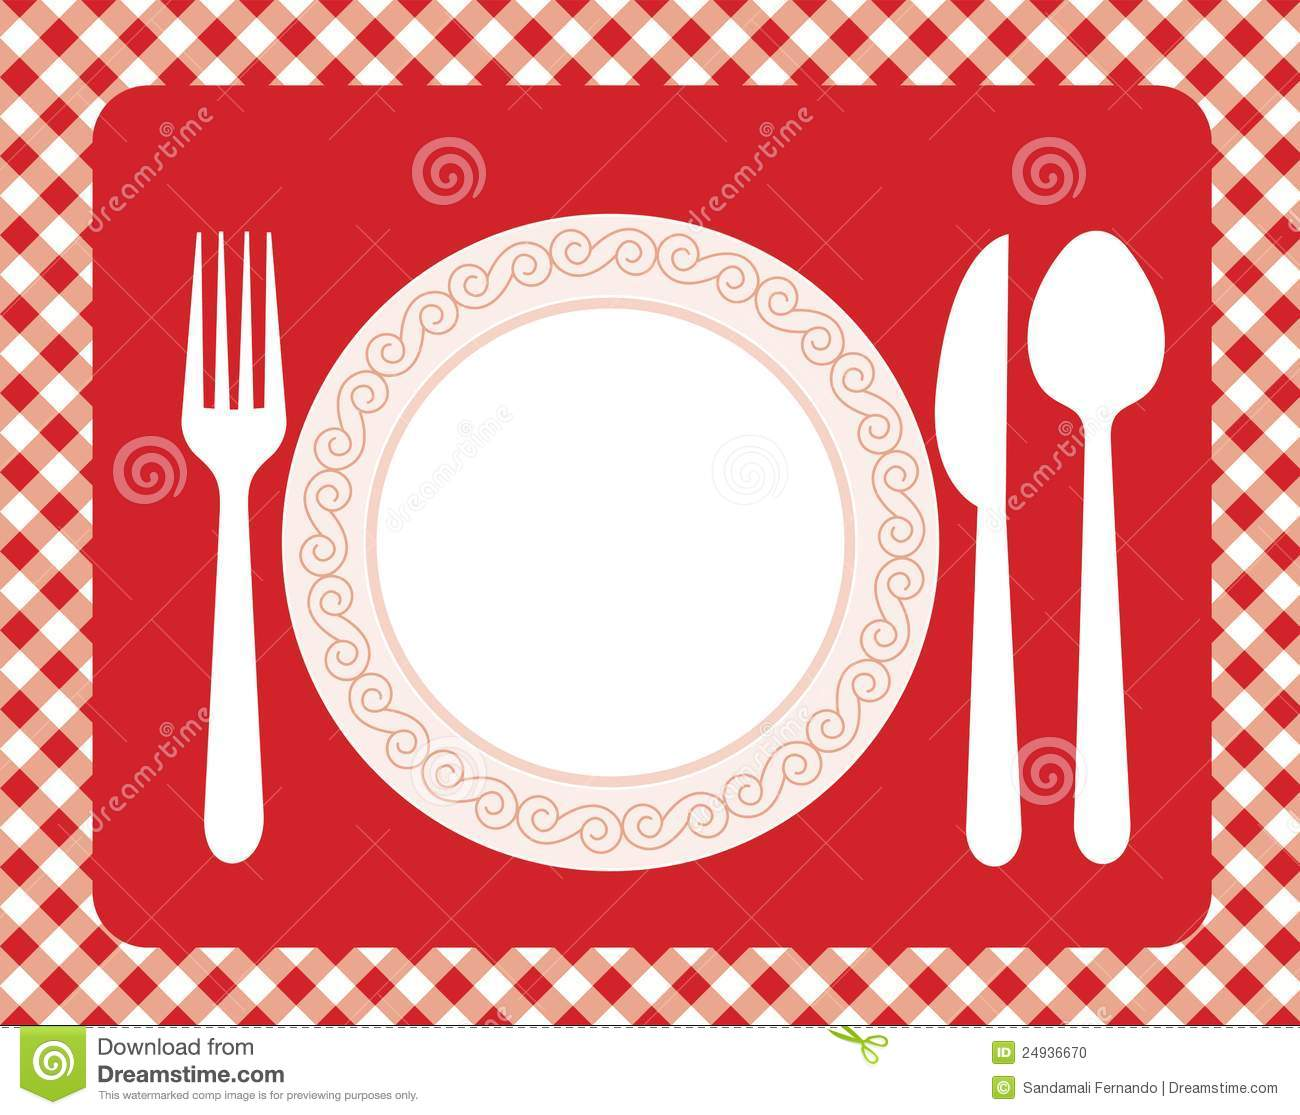 dinner invitation menu stock photo image 24936670 barbeque clip art food inviting you to barbeque clipart transparent